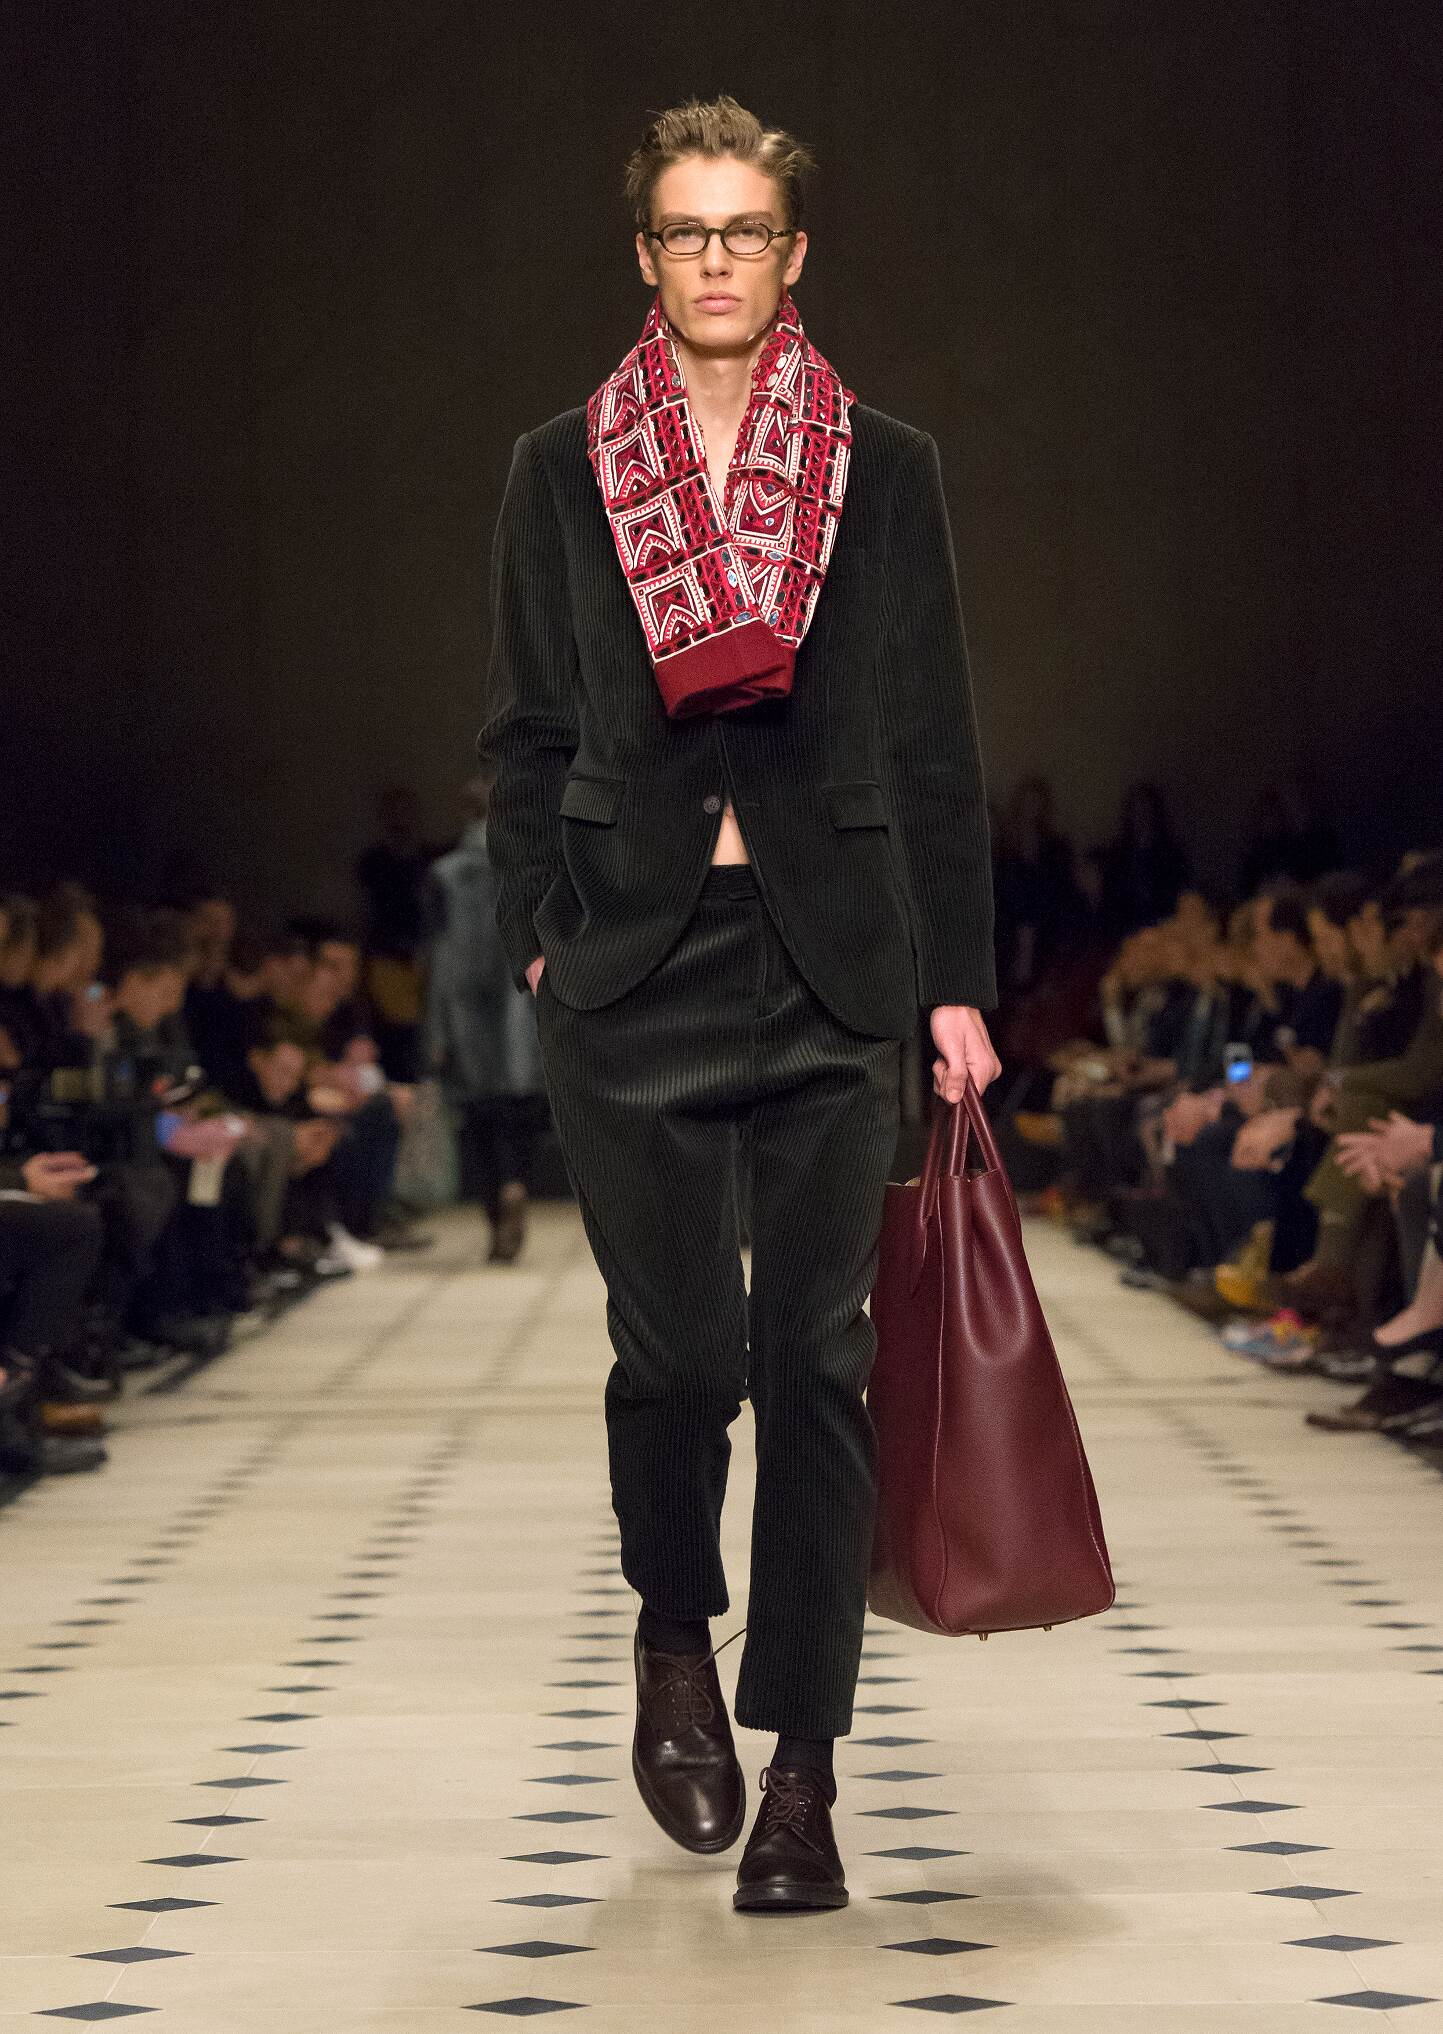 2015 Burberry Prorsum Fall Catwalk